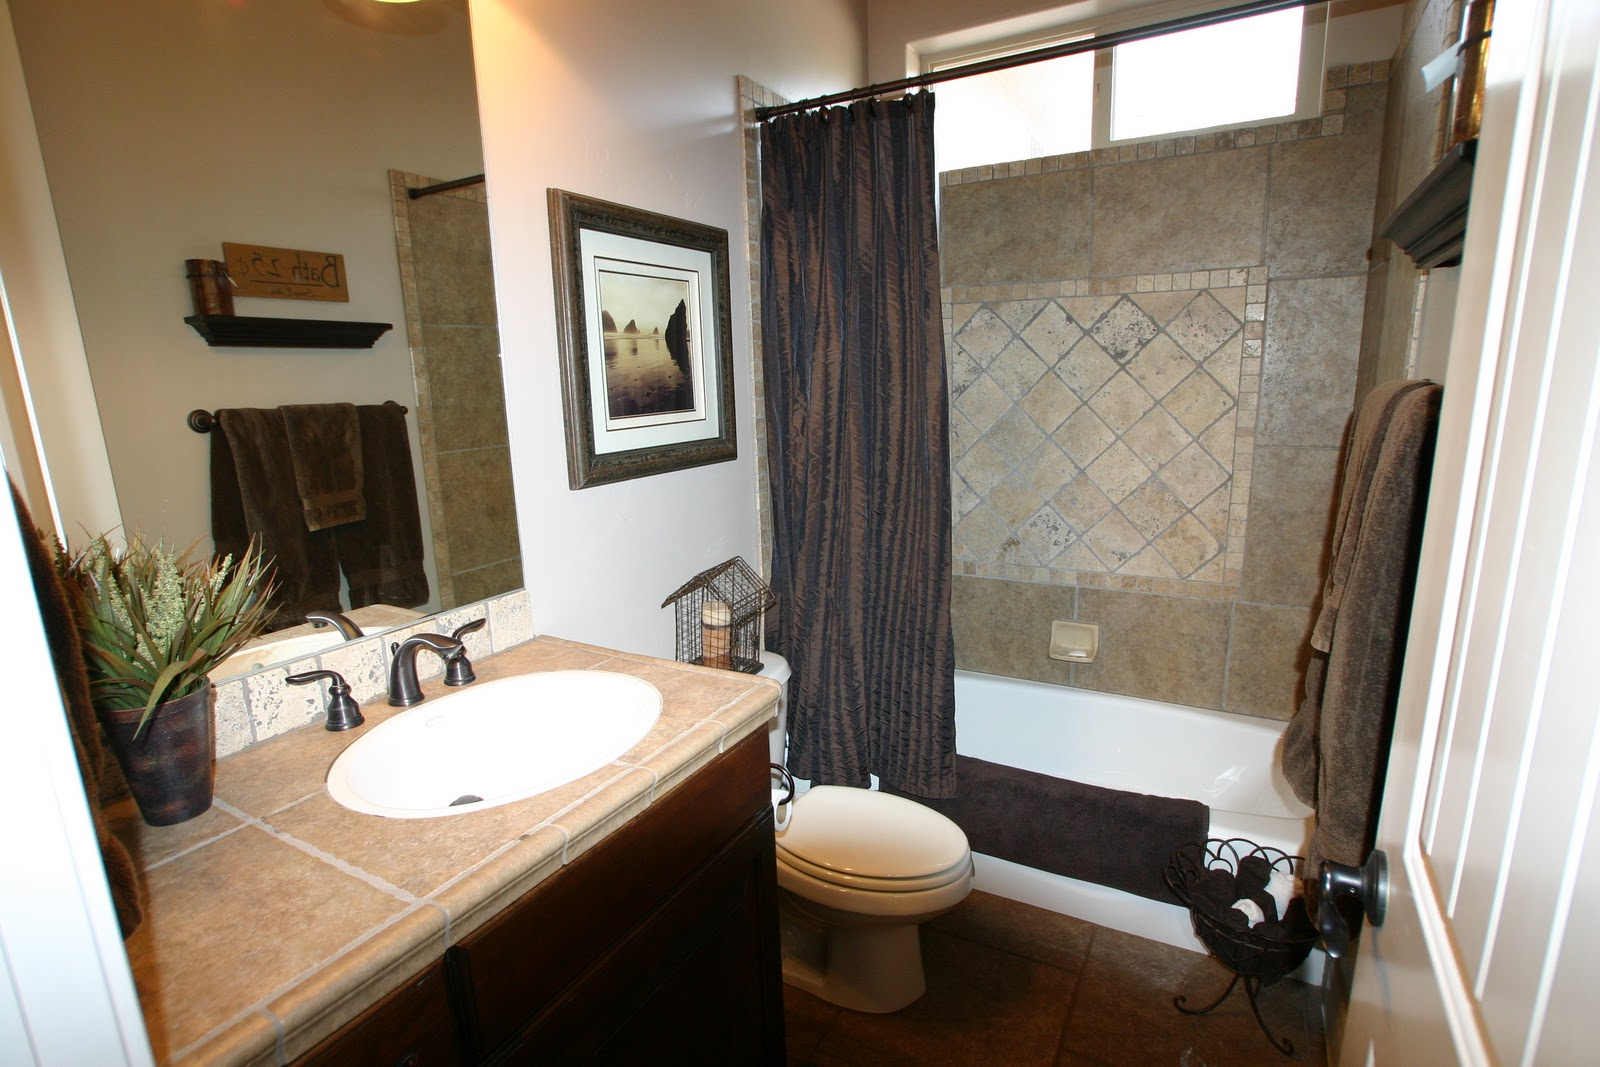 Brown And White Bathroom Decor: Doubletake Decor: Projects In The Works